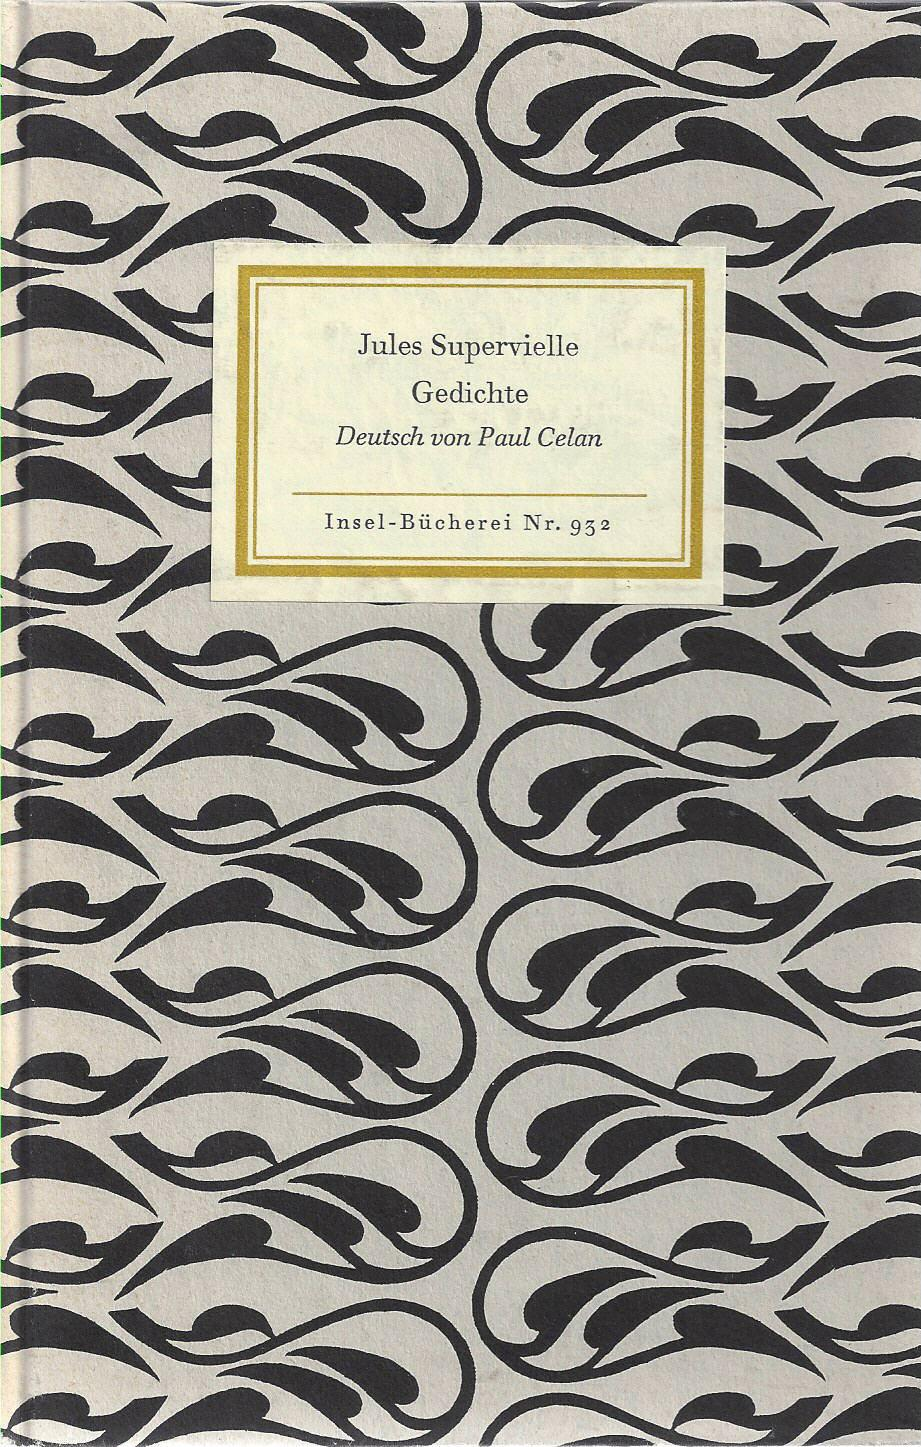 Gedichte. Deutsch von Paul Celan.: Supervielle, Jules: